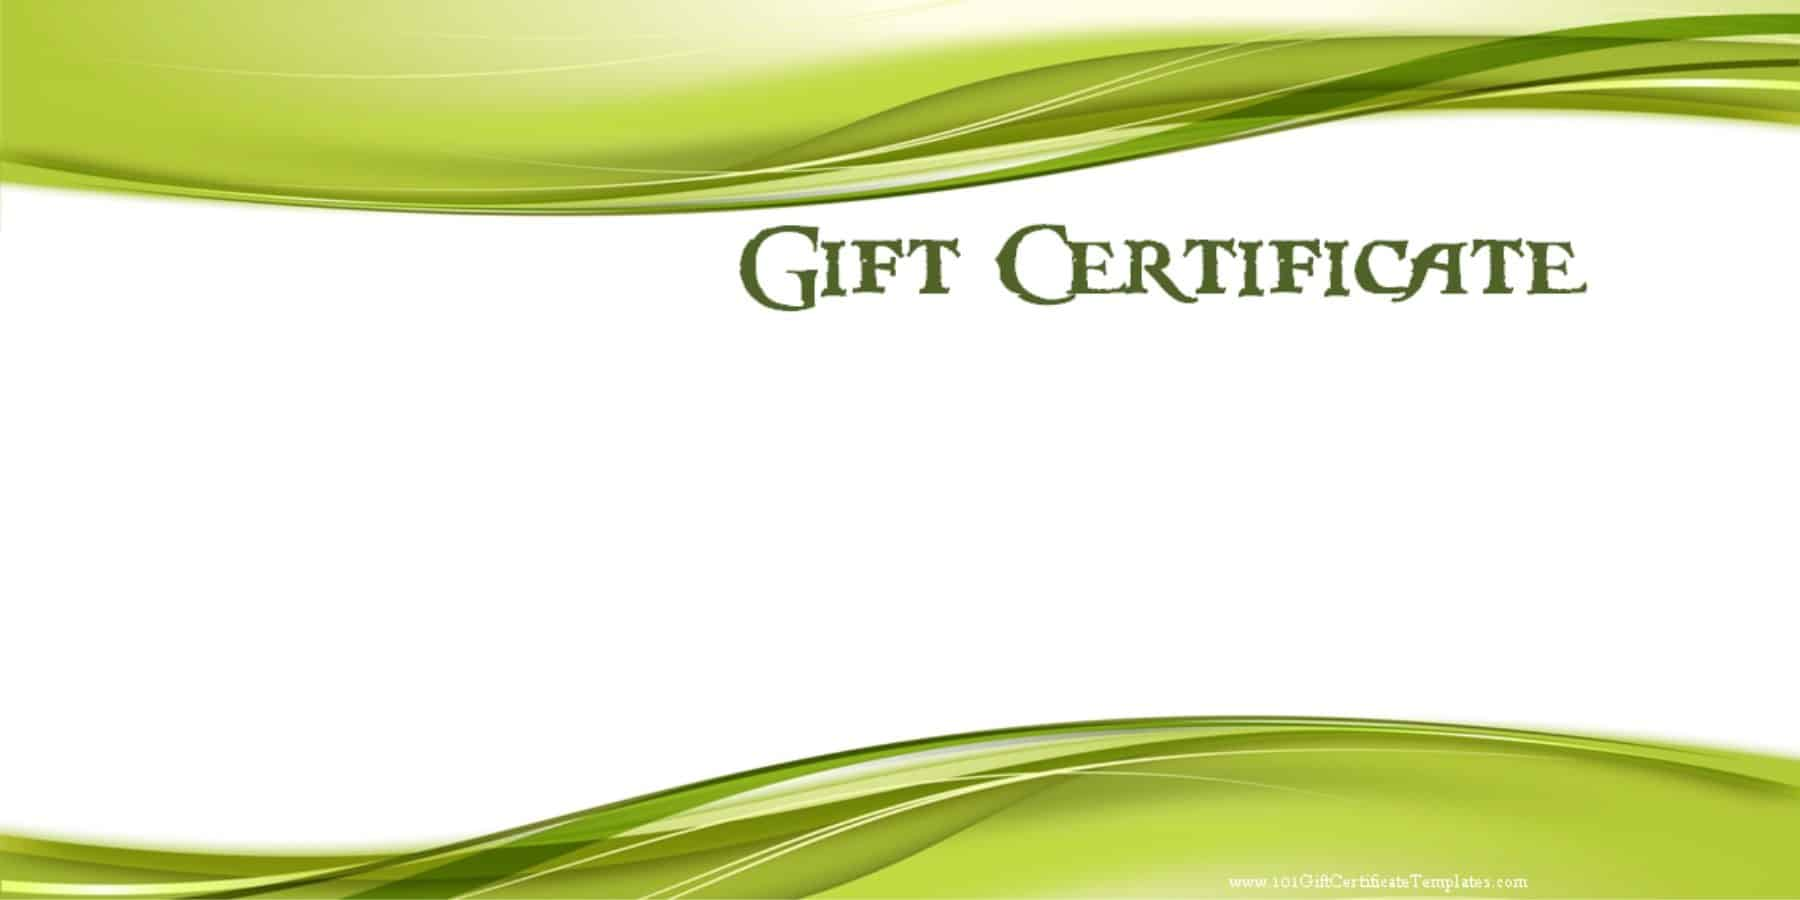 Printable gift certificate templates blank gift certificate which can be customized yadclub Image collections